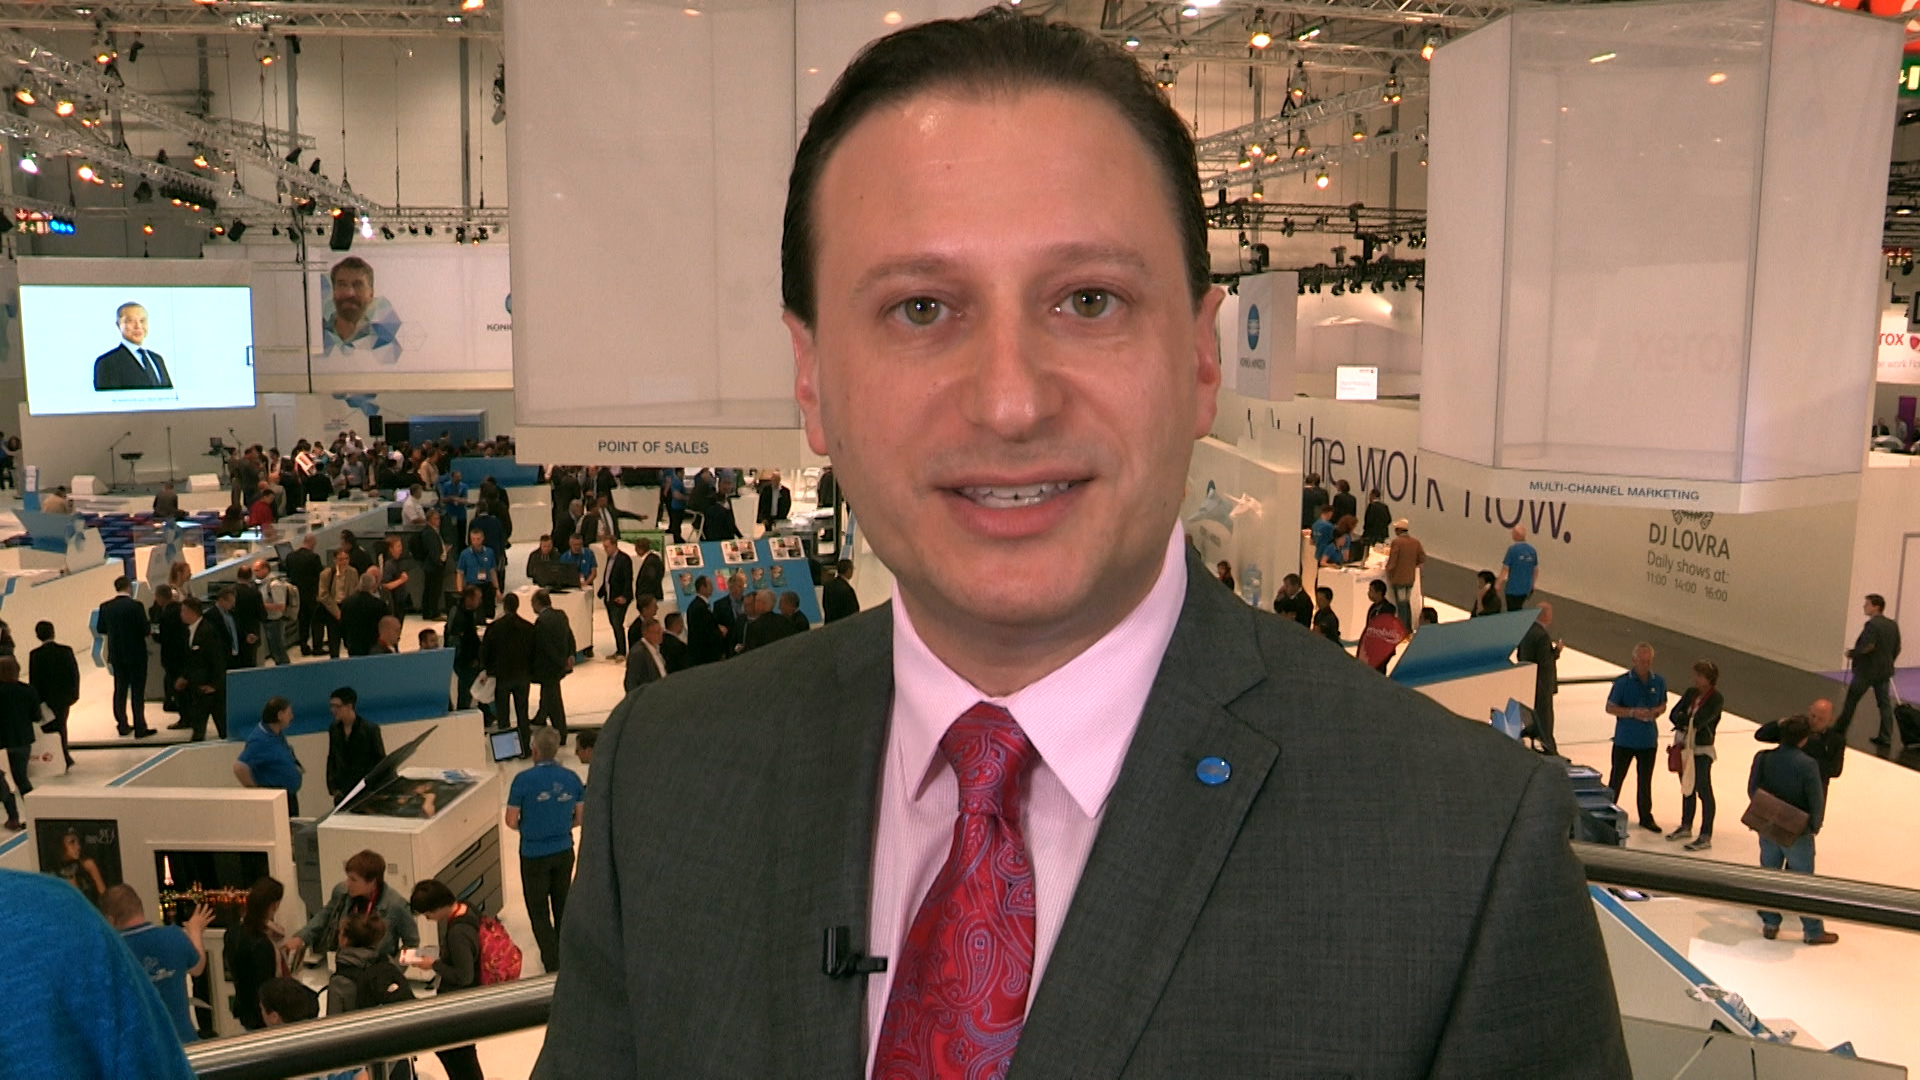 A Preview of New Technology from Konica Minolta at drupa